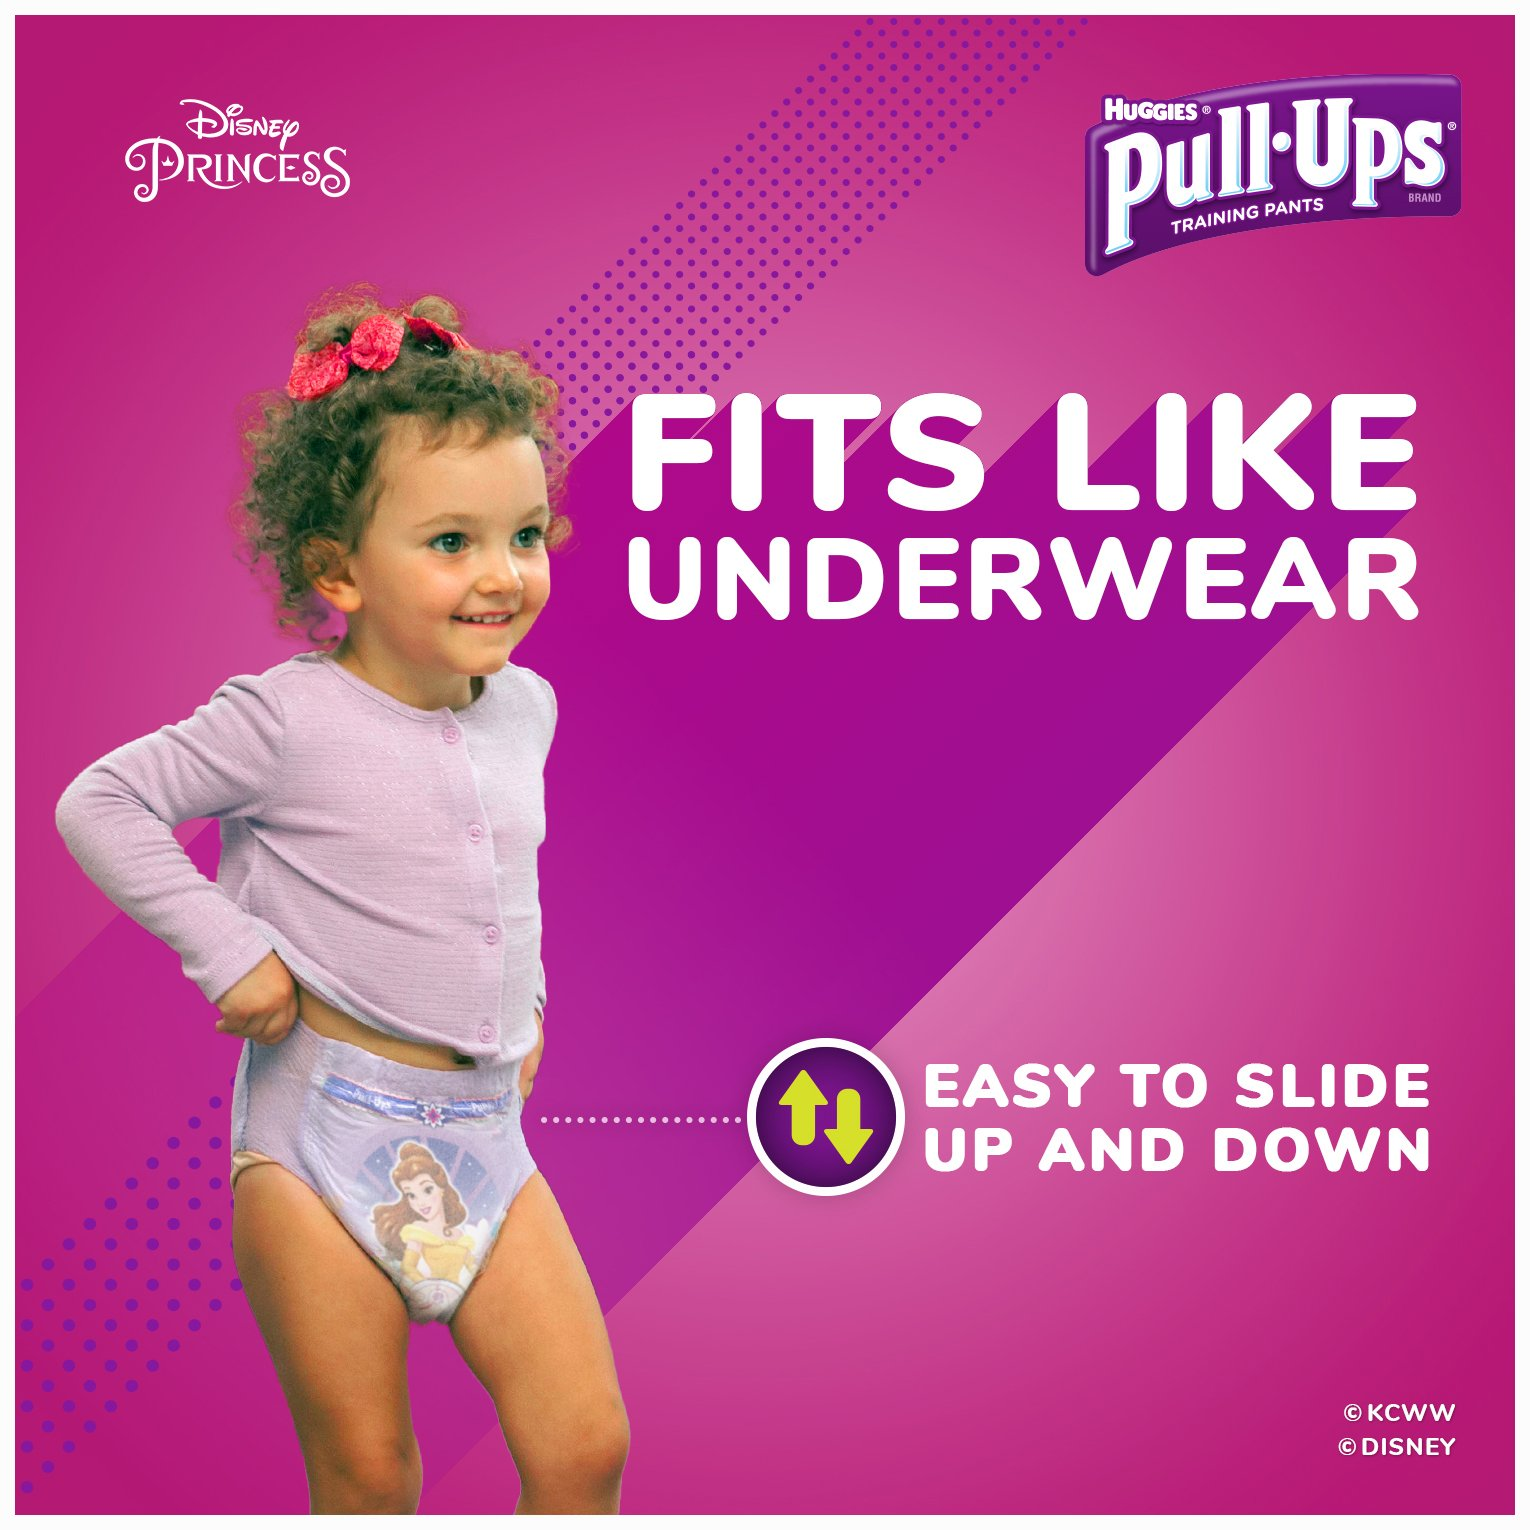 Pull-Ups Night-Time Potty Training Pants for Girls, 3T-4T (32-40 lb.), 20 Ct. (Packaging May Vary) (Pack of 4) by Huggies (Image #4)